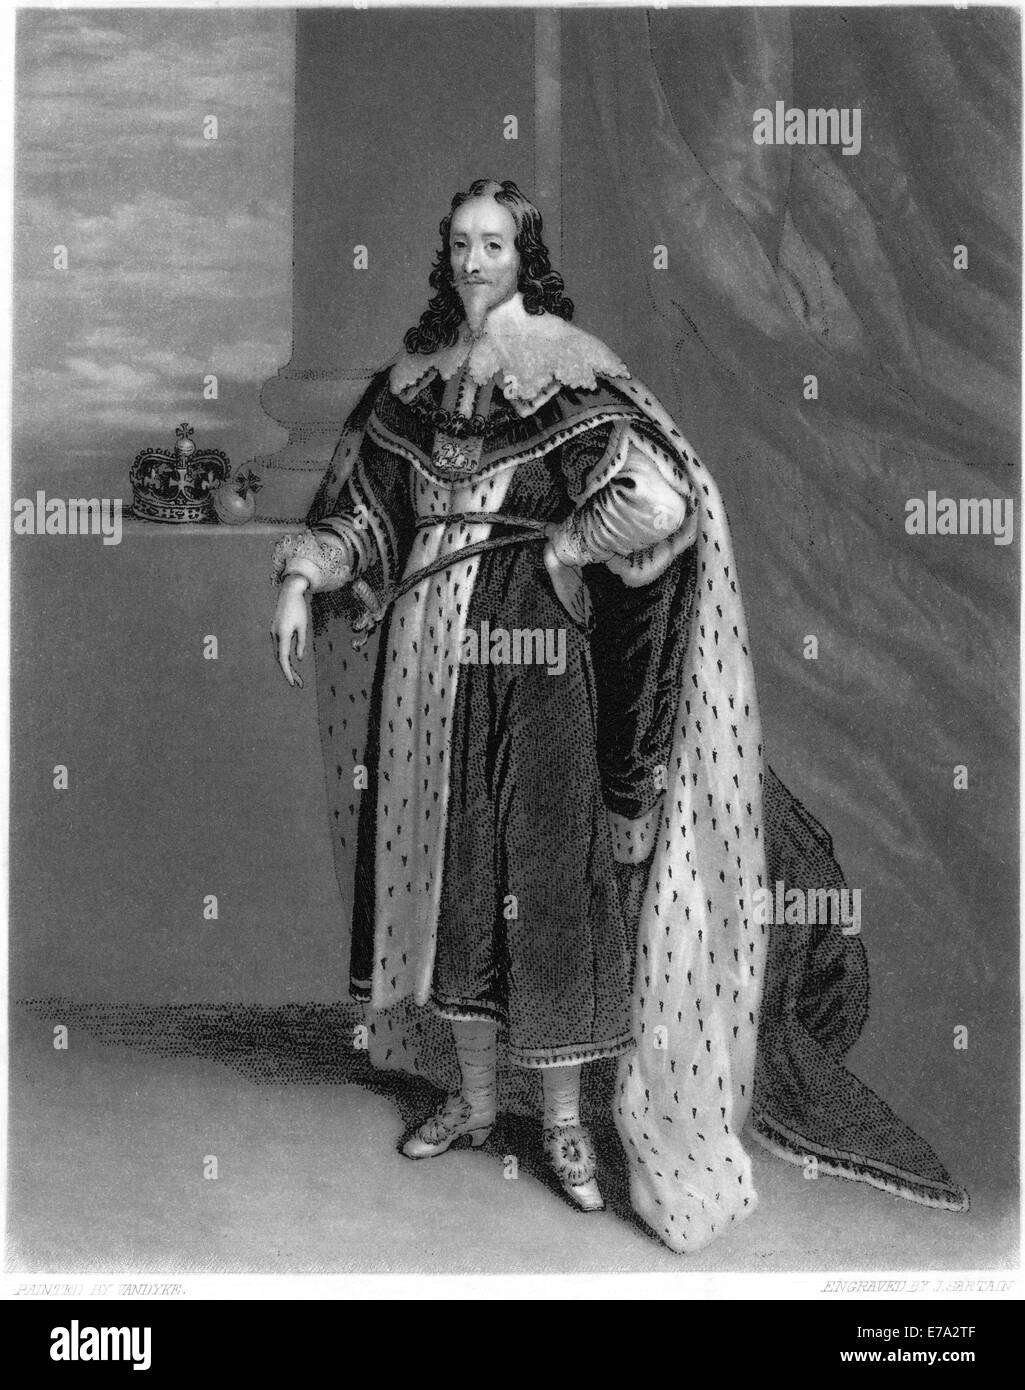 Charles I of England (1600-1649), King of England, Ireland and Scotland 1625-1649, from a Painting by Anthony Van - Stock Image